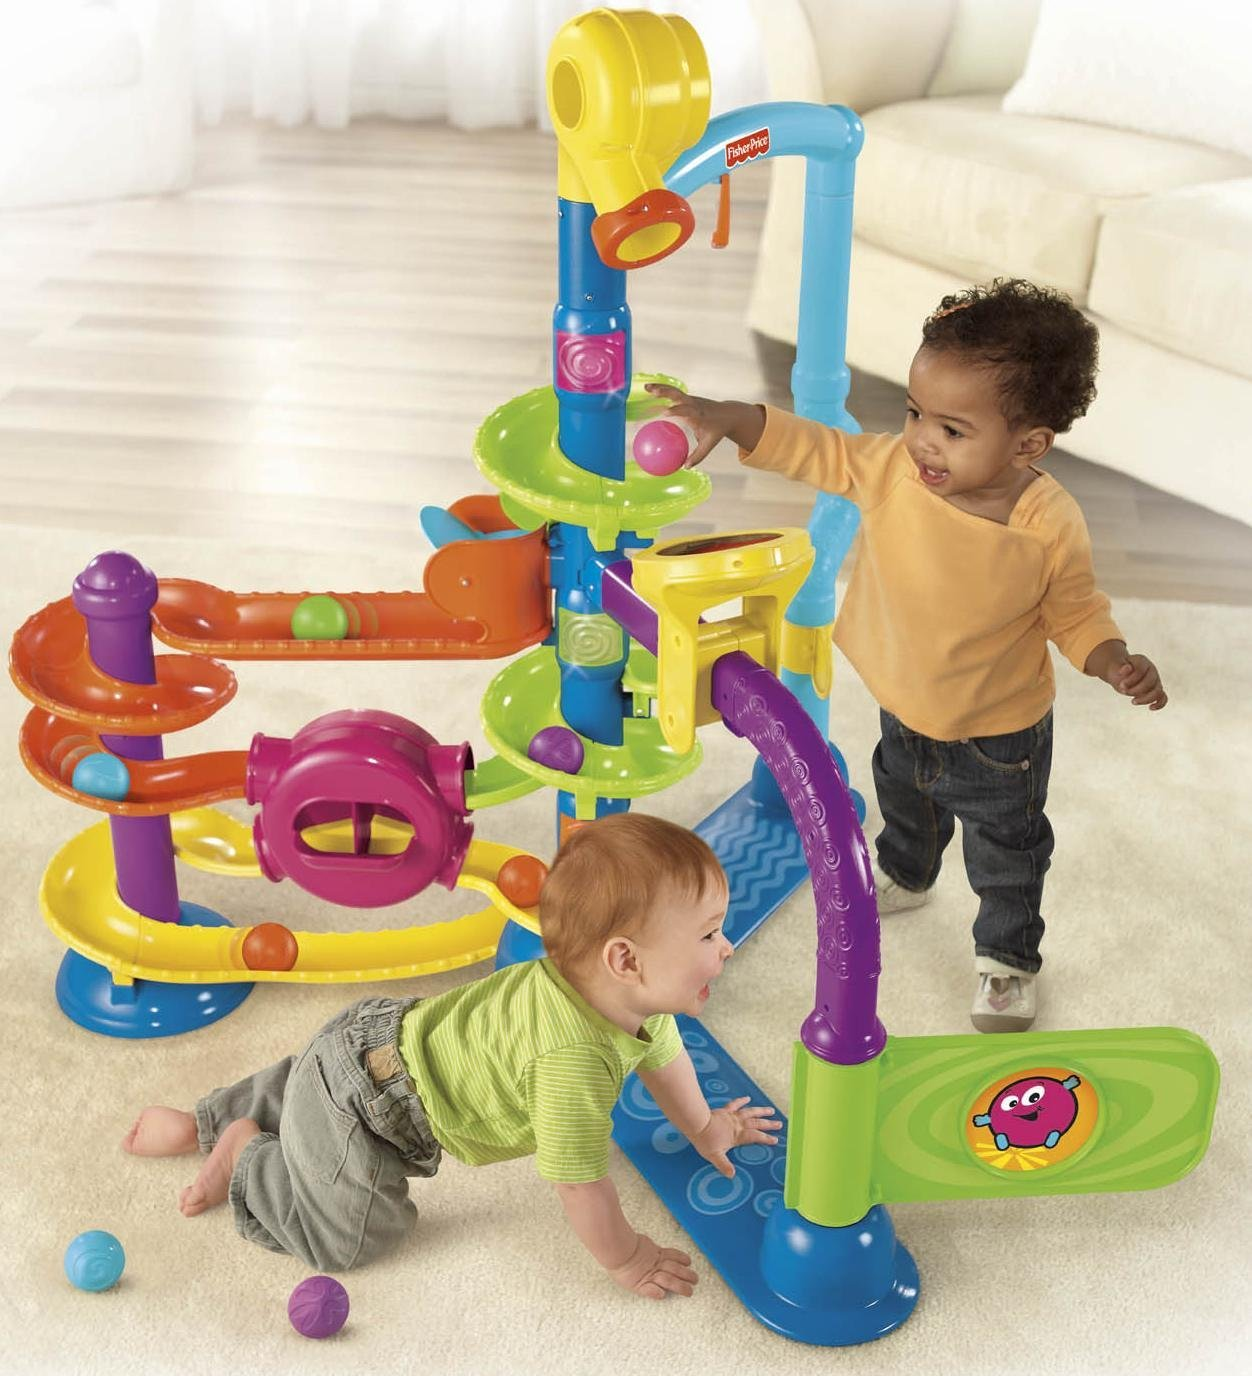 Toys For 0 2 Years Old : Total fab best gifts for one year old boys first birthday